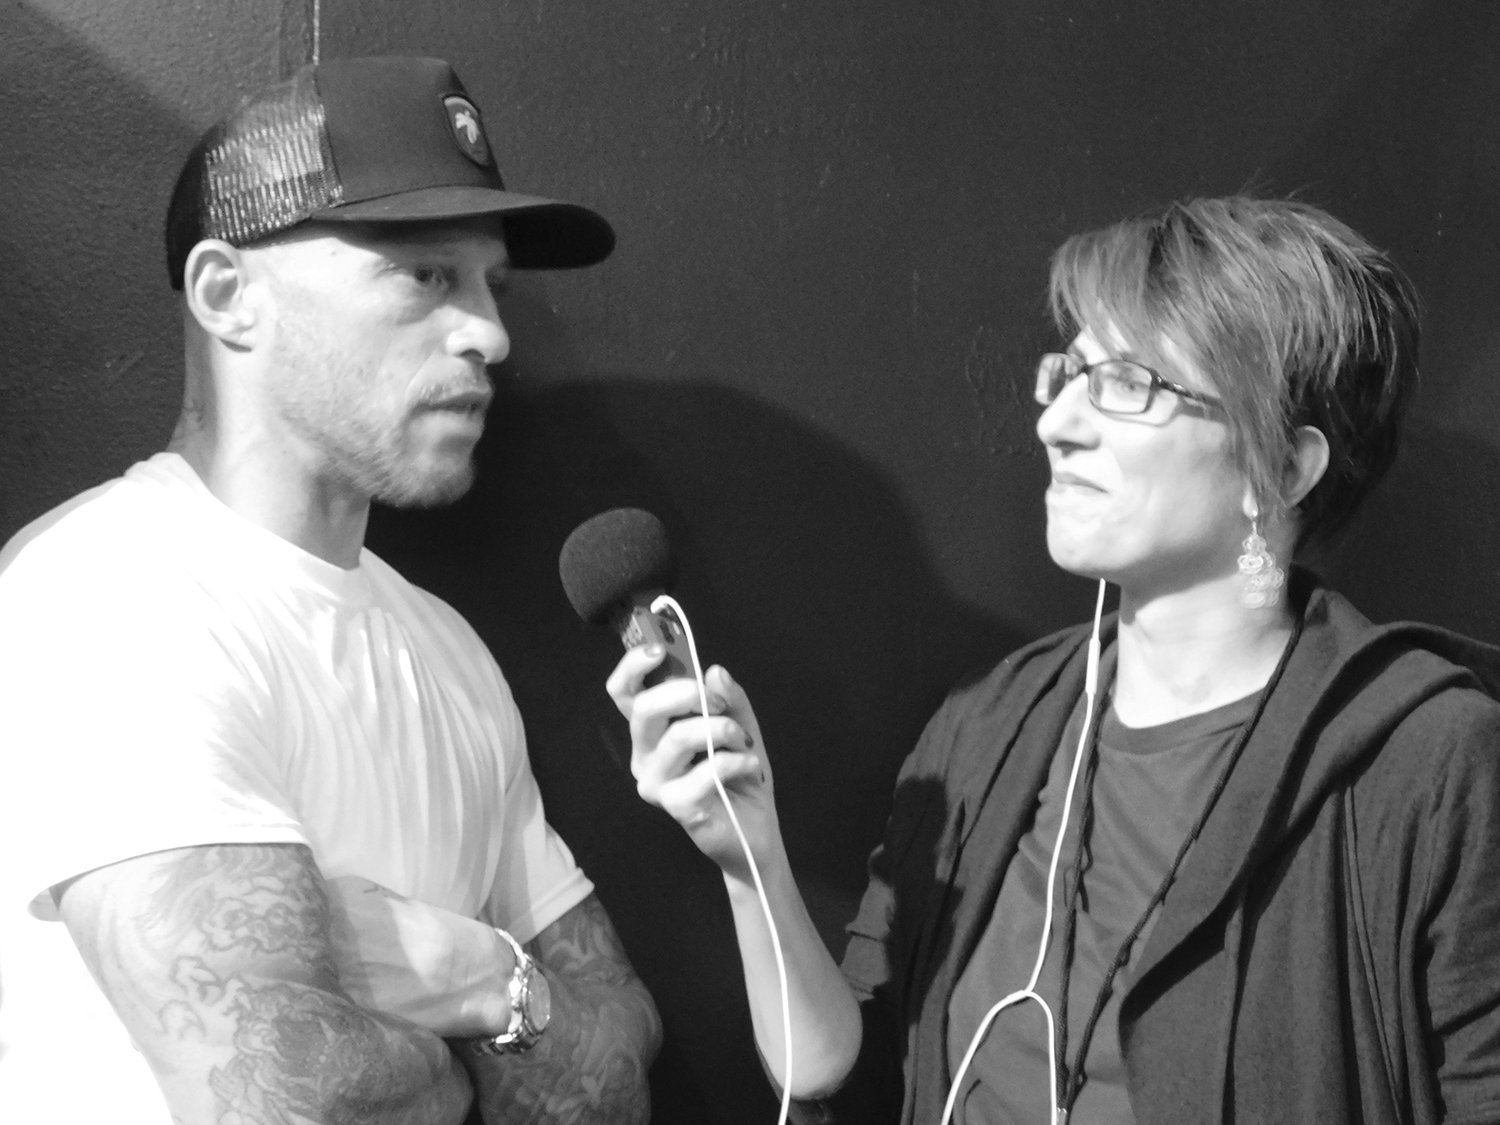 Ami james interview and adriana de barros